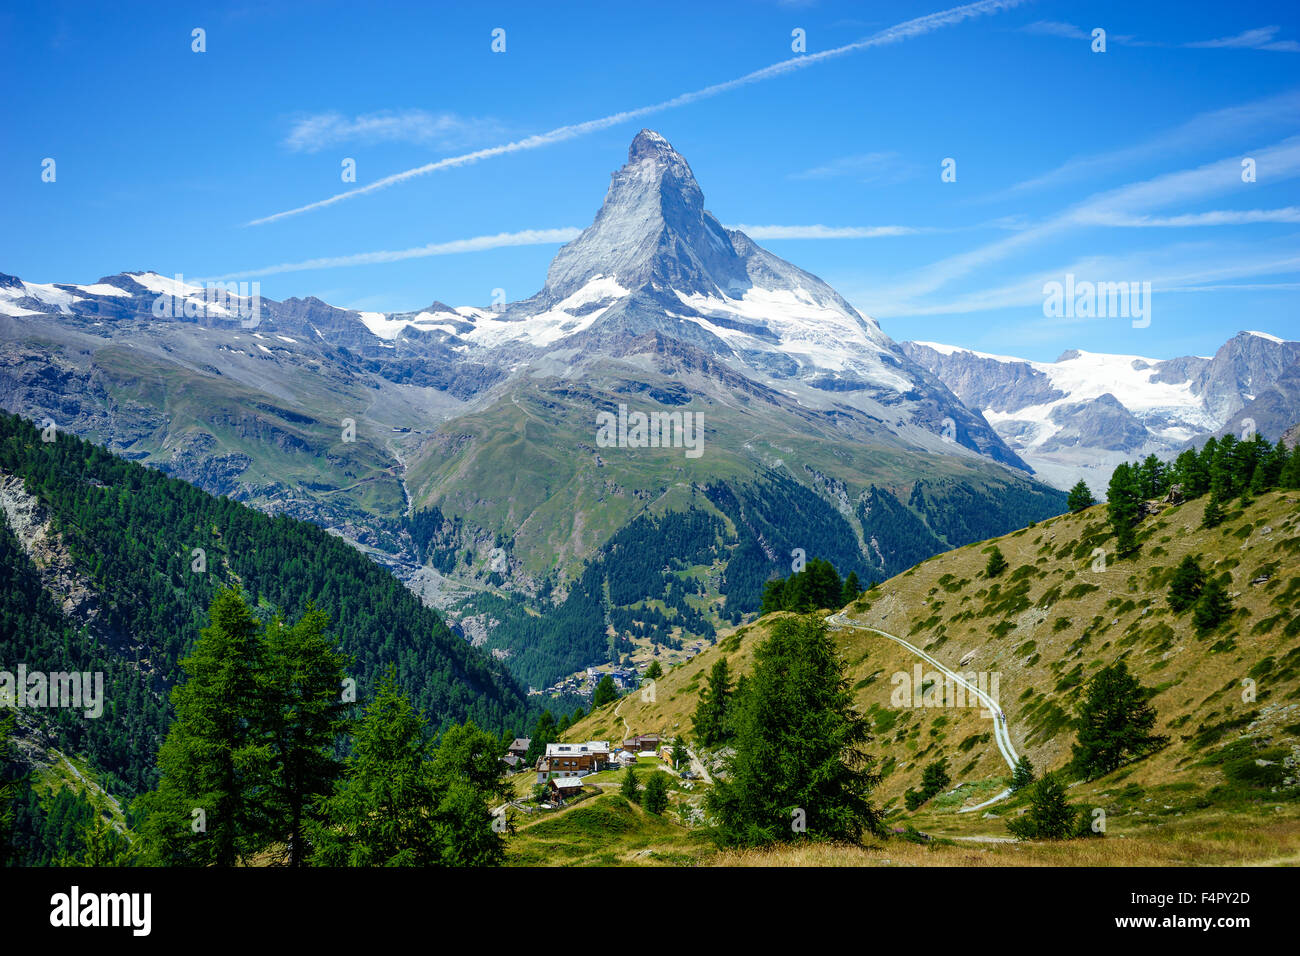 Hiking trails zig-zag through to Matterhorn peak. July, 2015. Matterhorn, Switzerland. - Stock Image